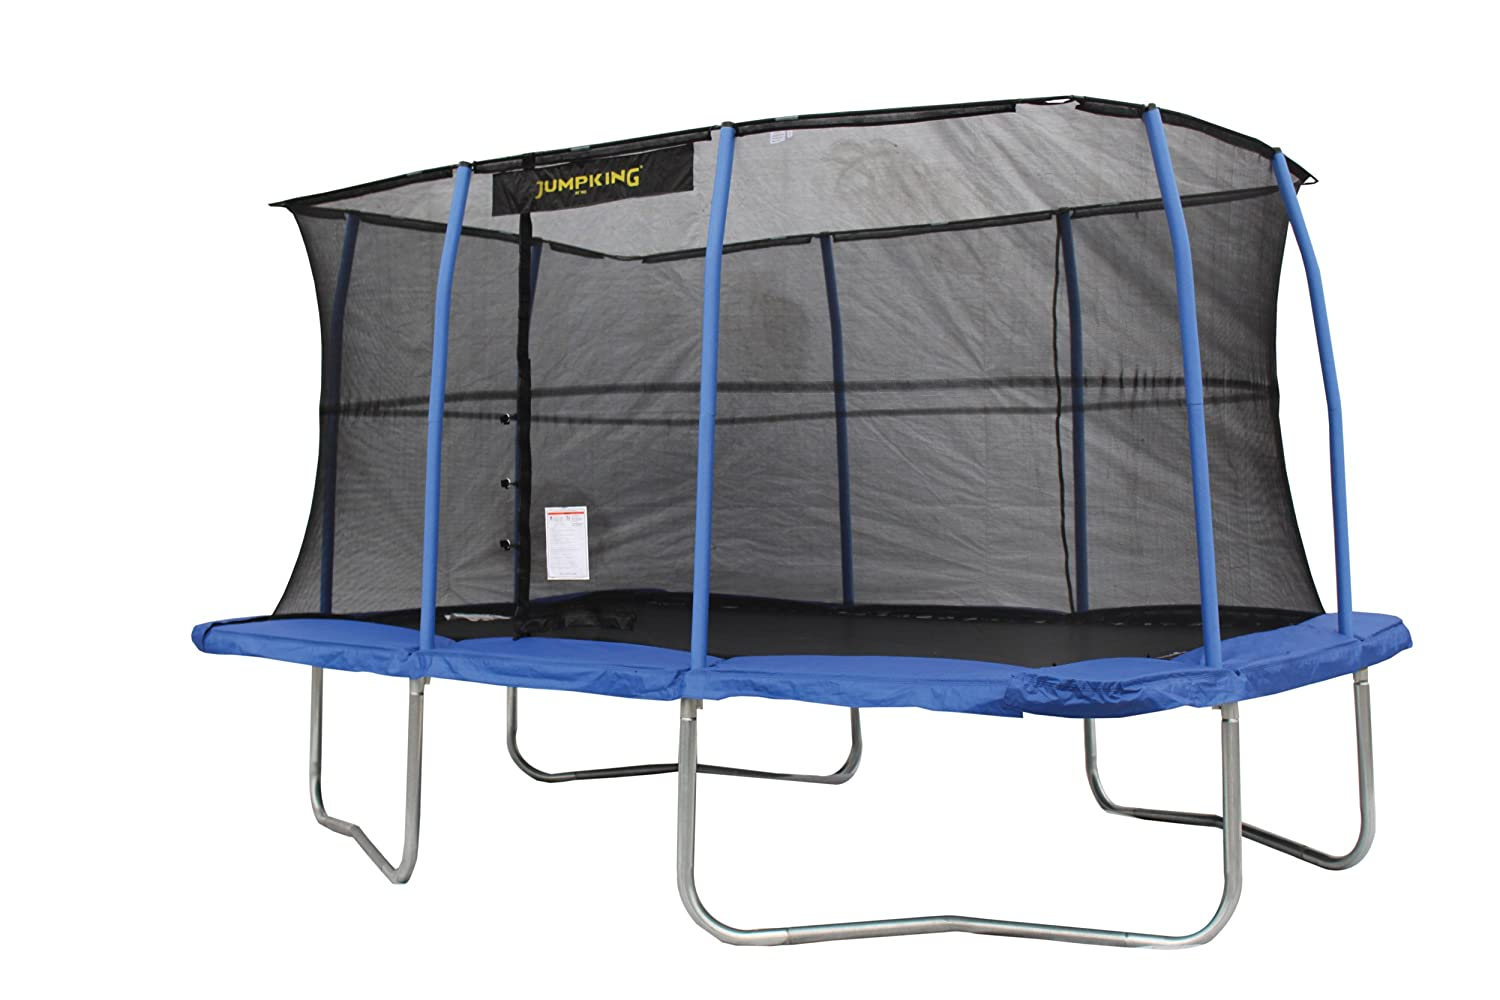 Amazon.com: JUMPKING 10 x 14 foot rectangular trampolín con ...